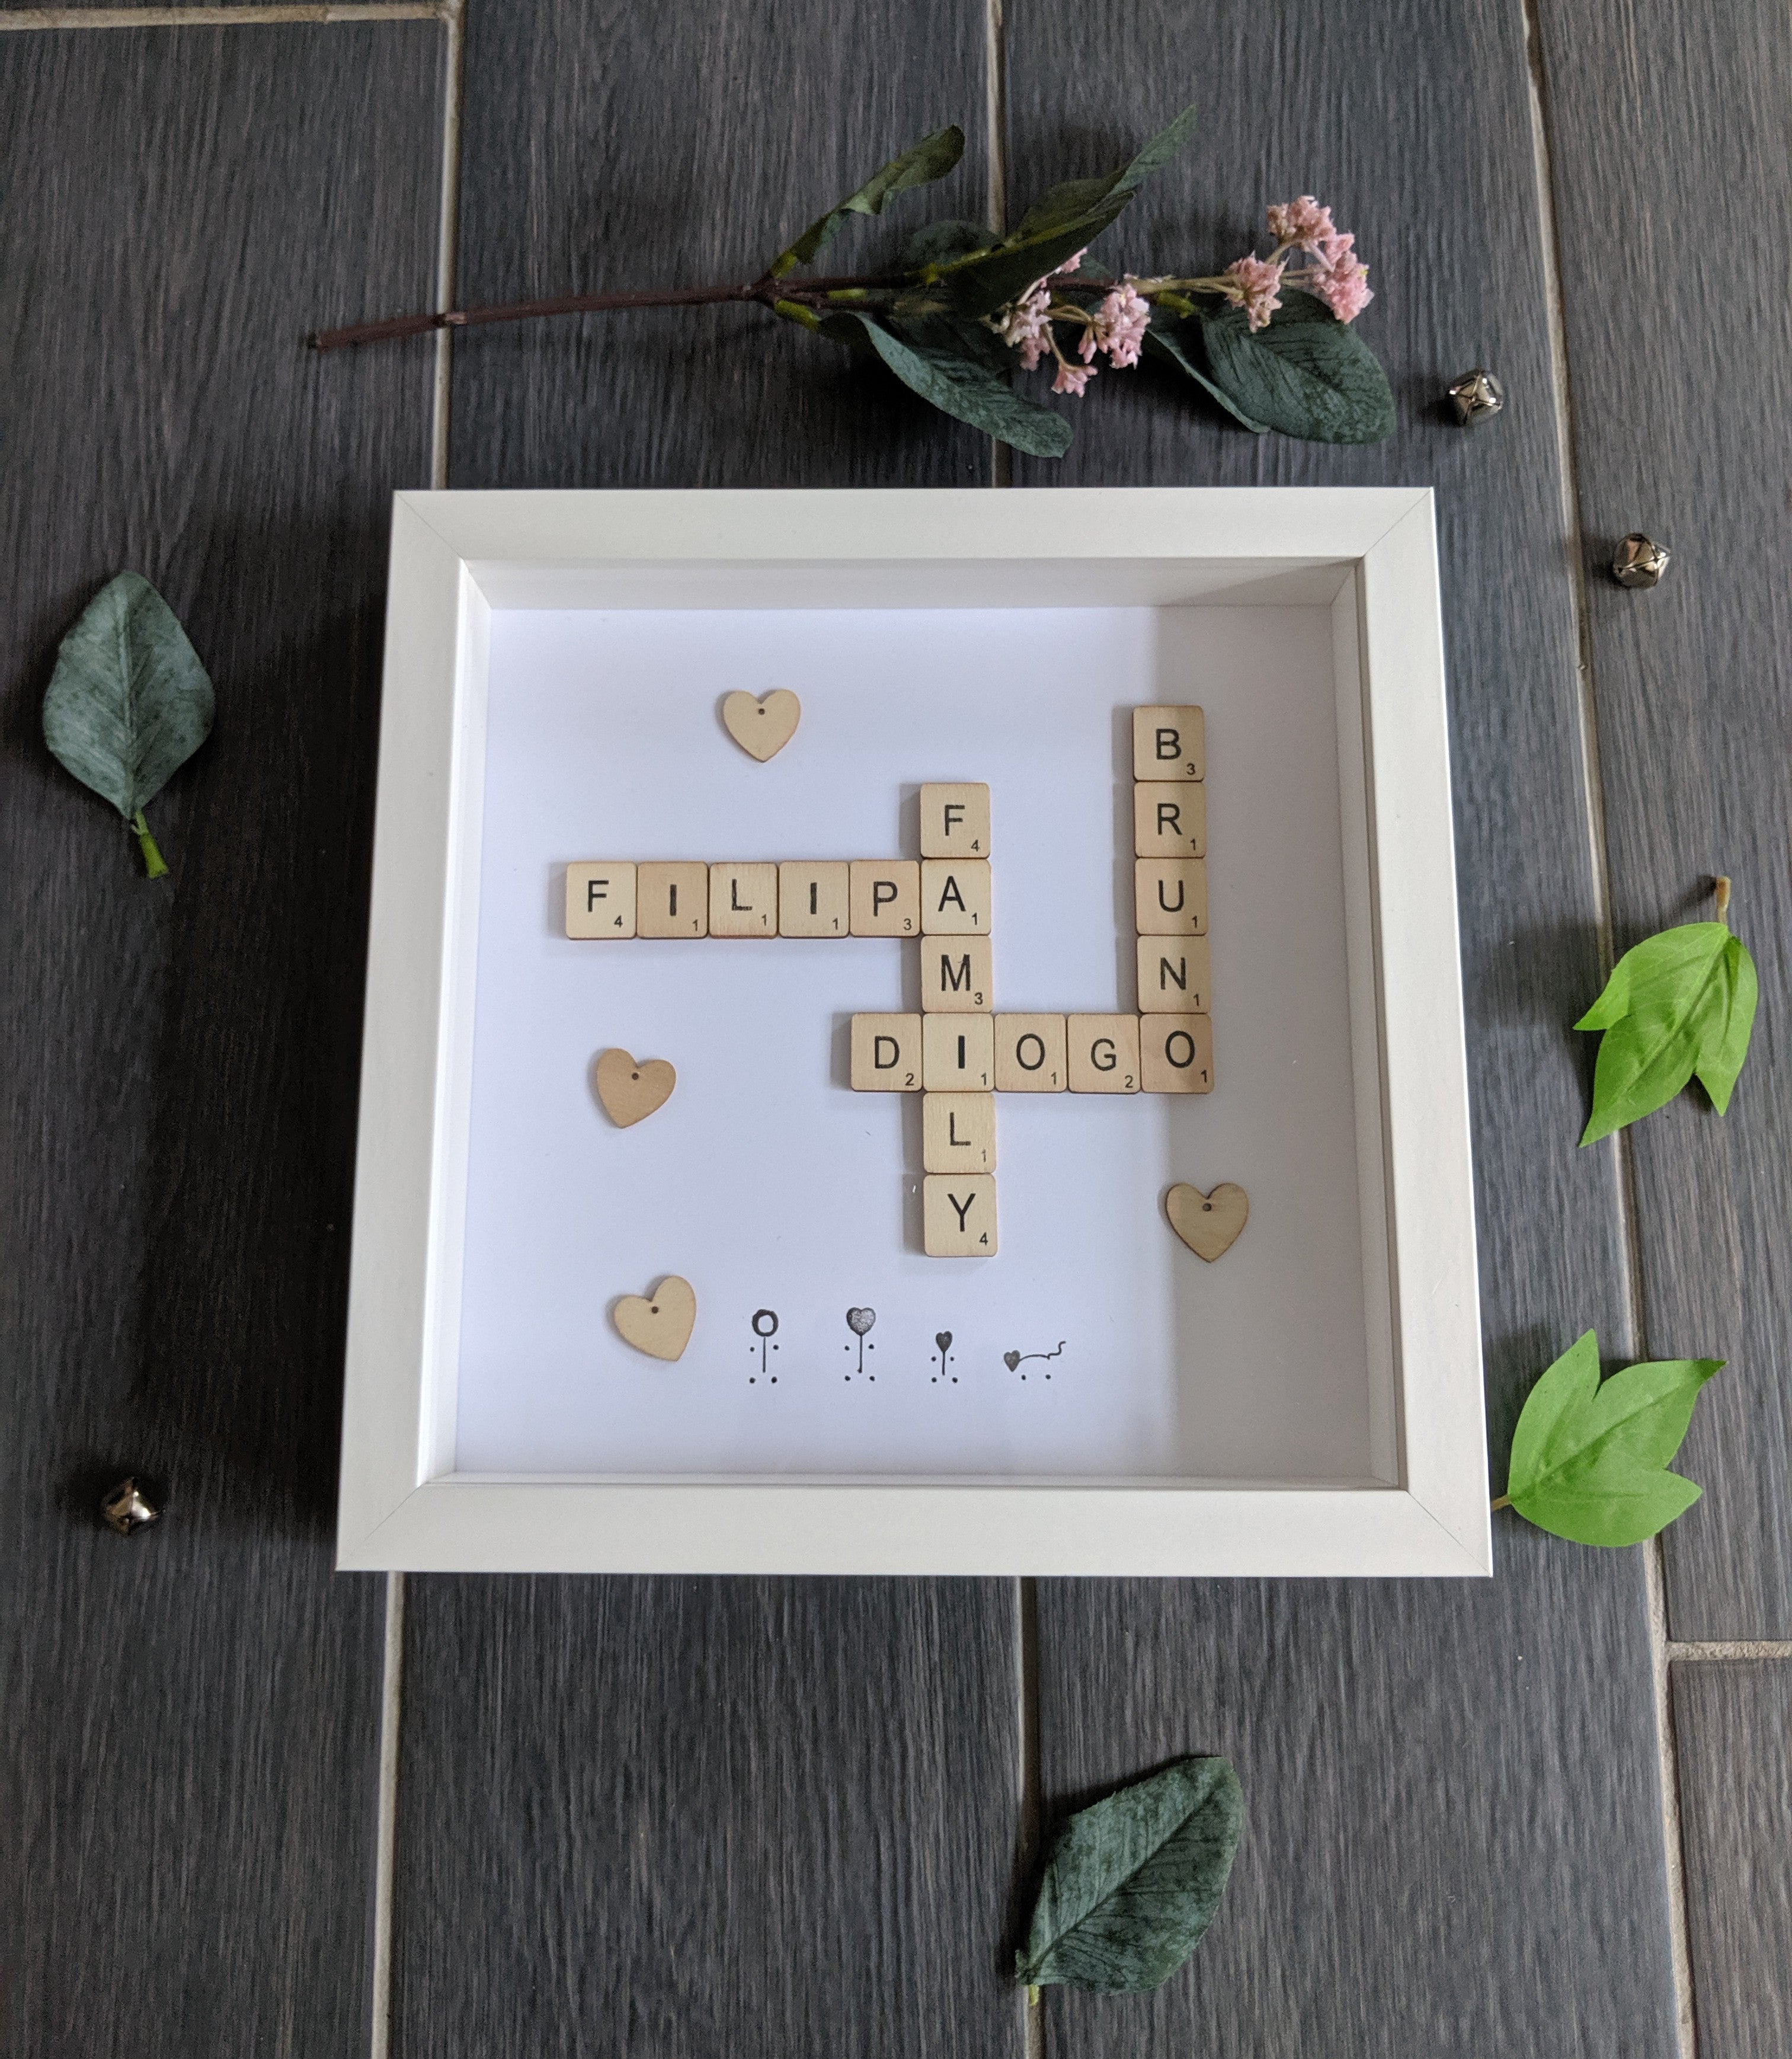 family scrabble frame available in black or white , with wooden embellishments